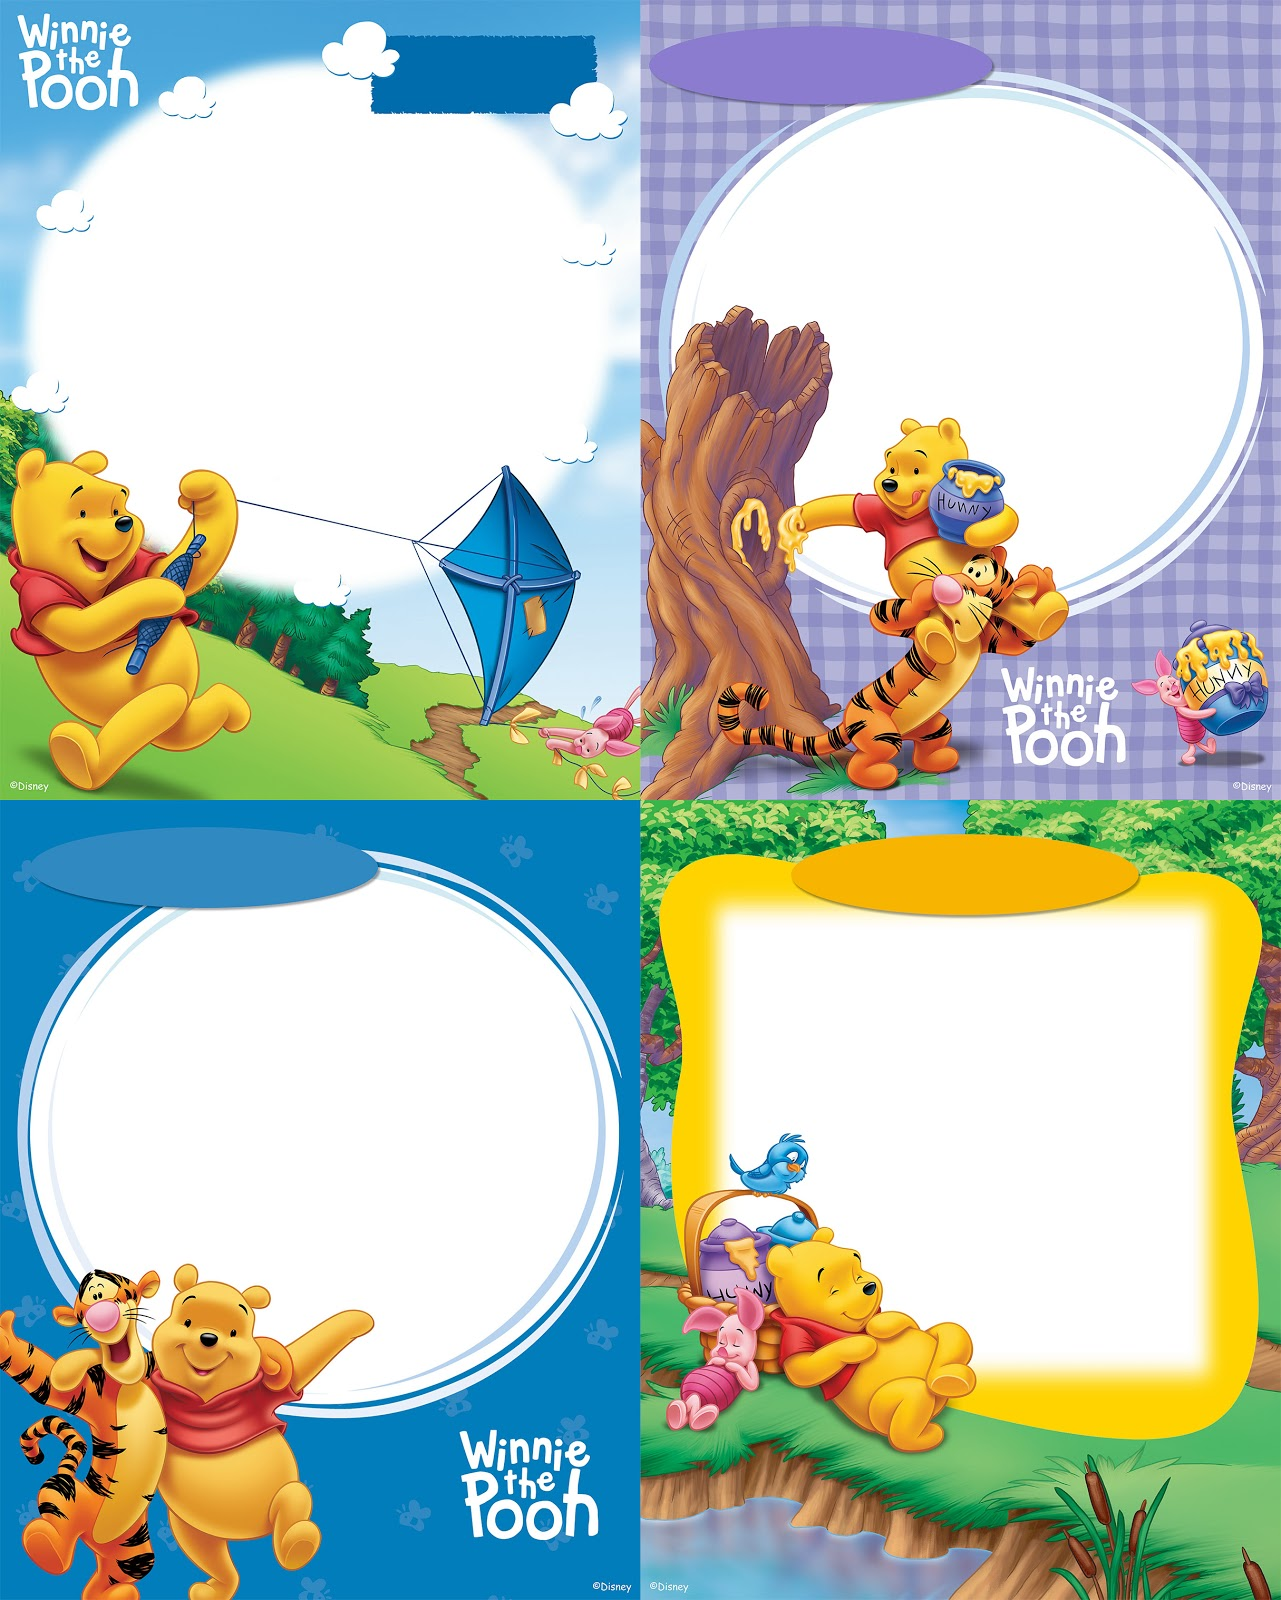 MARCOS WINNIE THE POOH - MARCOS INFANTILES PHOTOSHOP